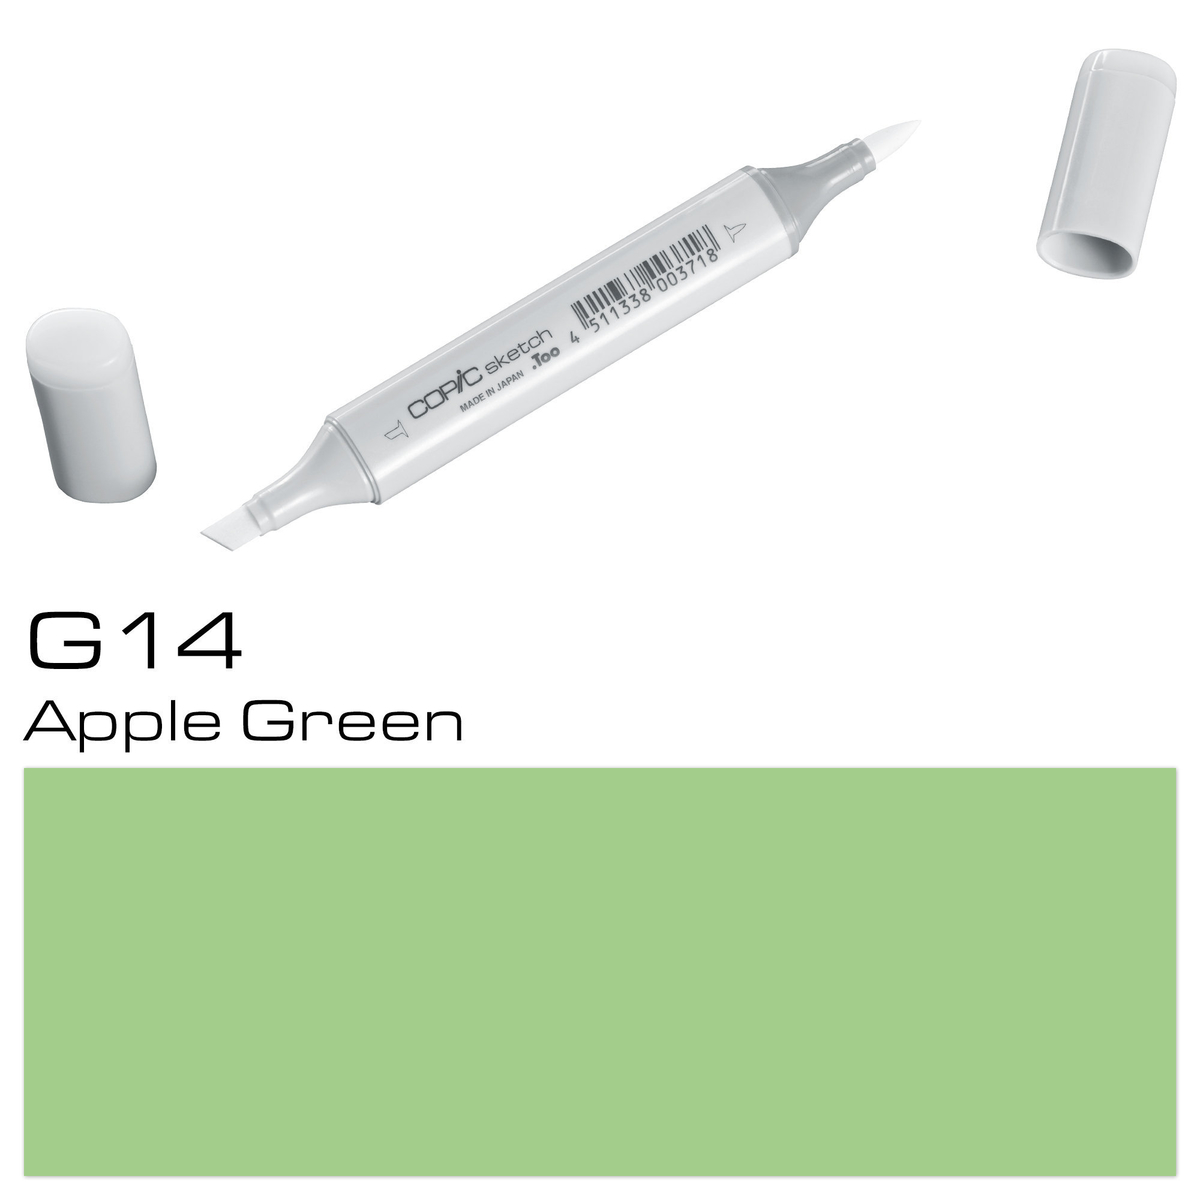 Copic Sketch G 14 apple green